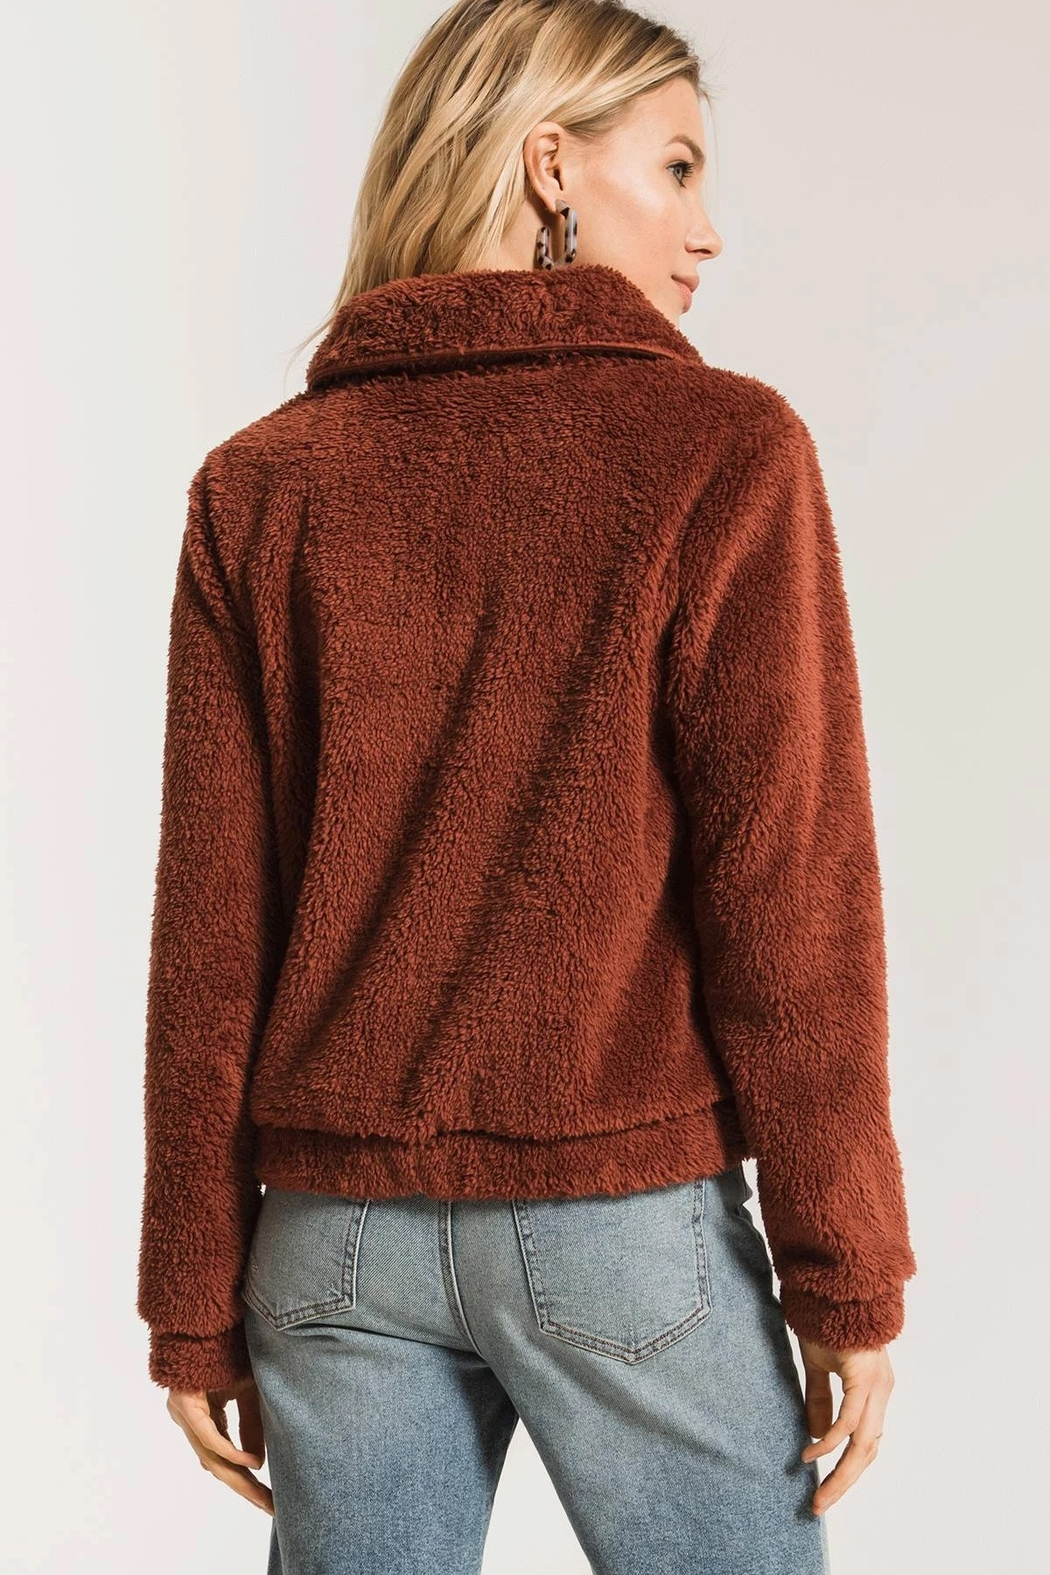 z supply The Sherpa Crop Jacket - Back Cropped Image